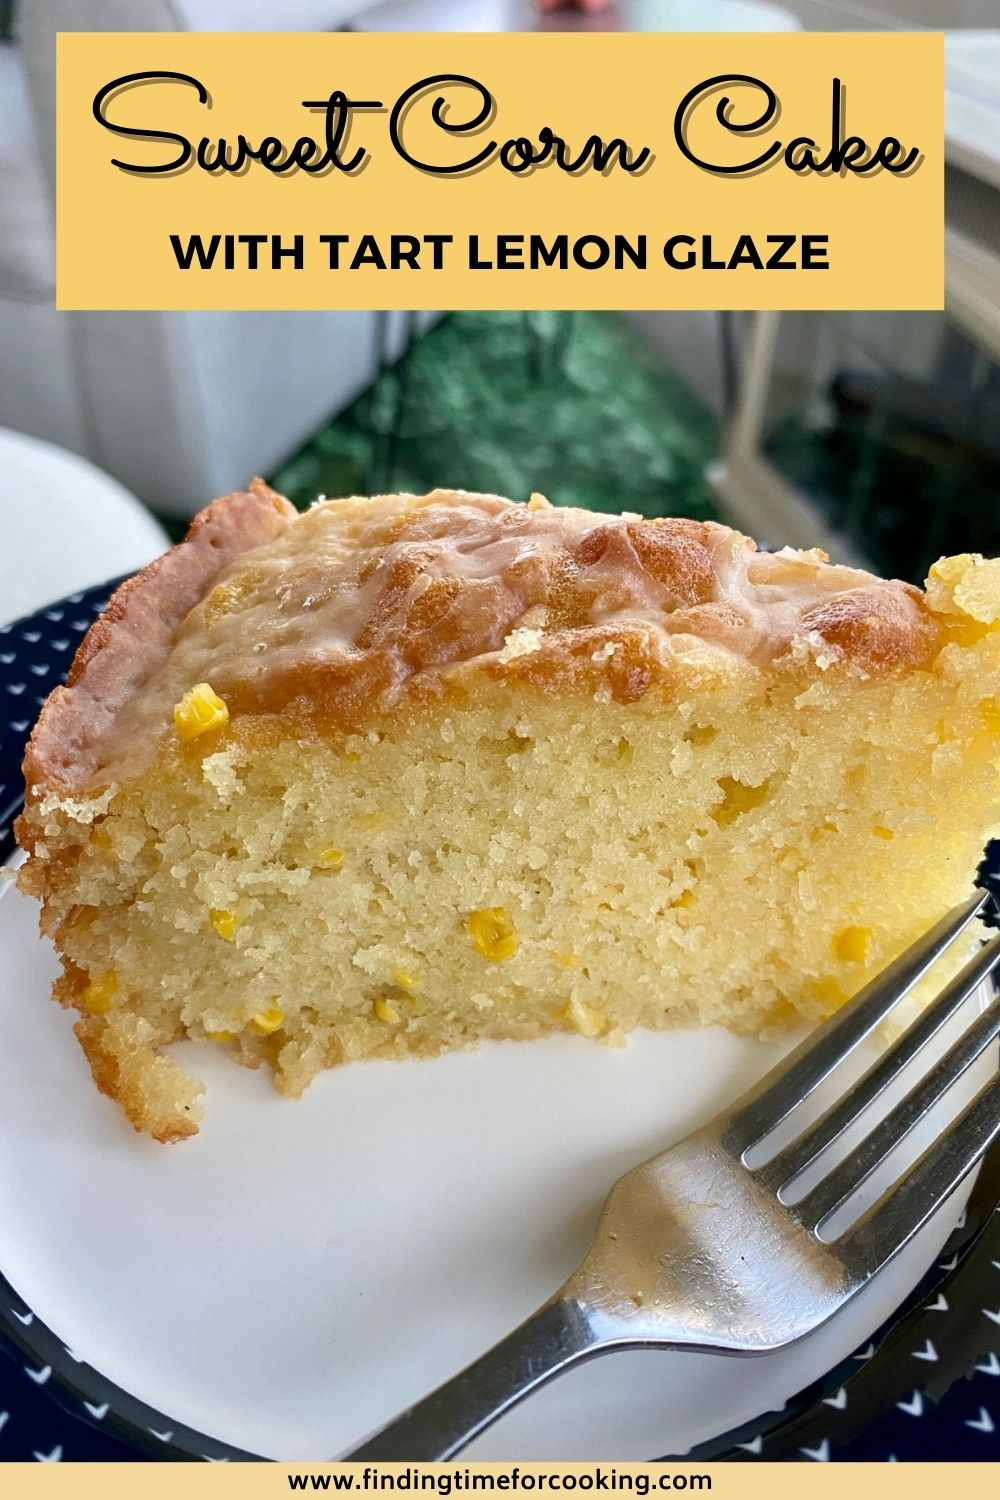 Sweet Corn Cake with Tart Lemon Glaze | This olive oil cake with fresh sweet corn is a delicious, moist, easy treat, the perfect way to use up all that fresh corn during late summer. Subtle & lightly sweet, a great afternoon pick-me-up. #sweetcorn #freshcorn #corn #cake #snackcake